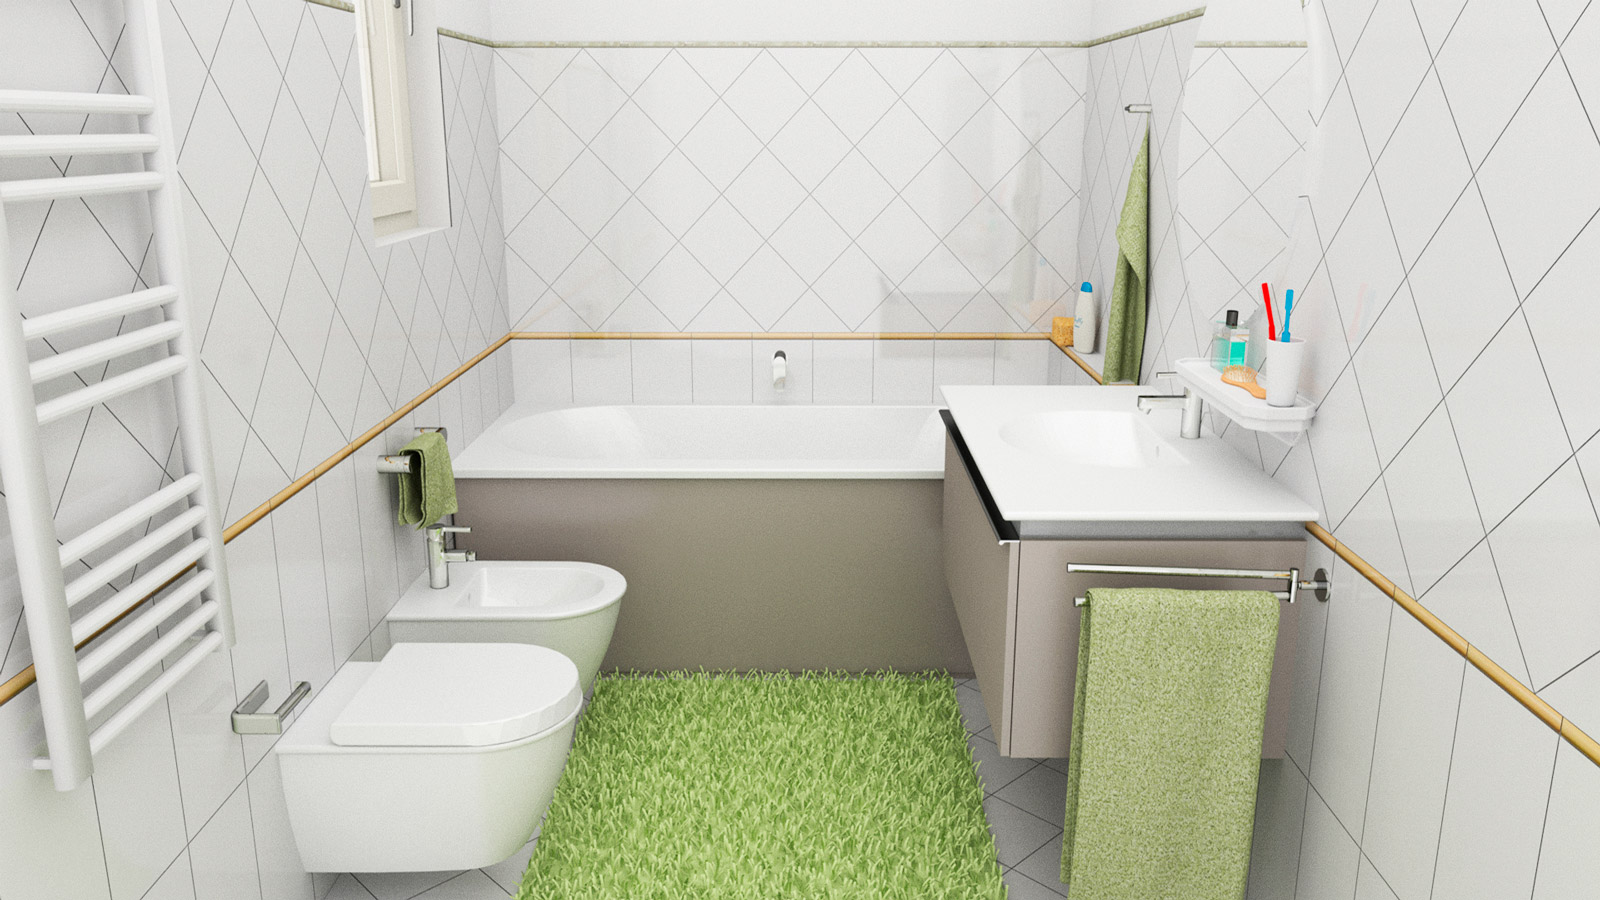 10D rendering software for bathroom interior design and covering